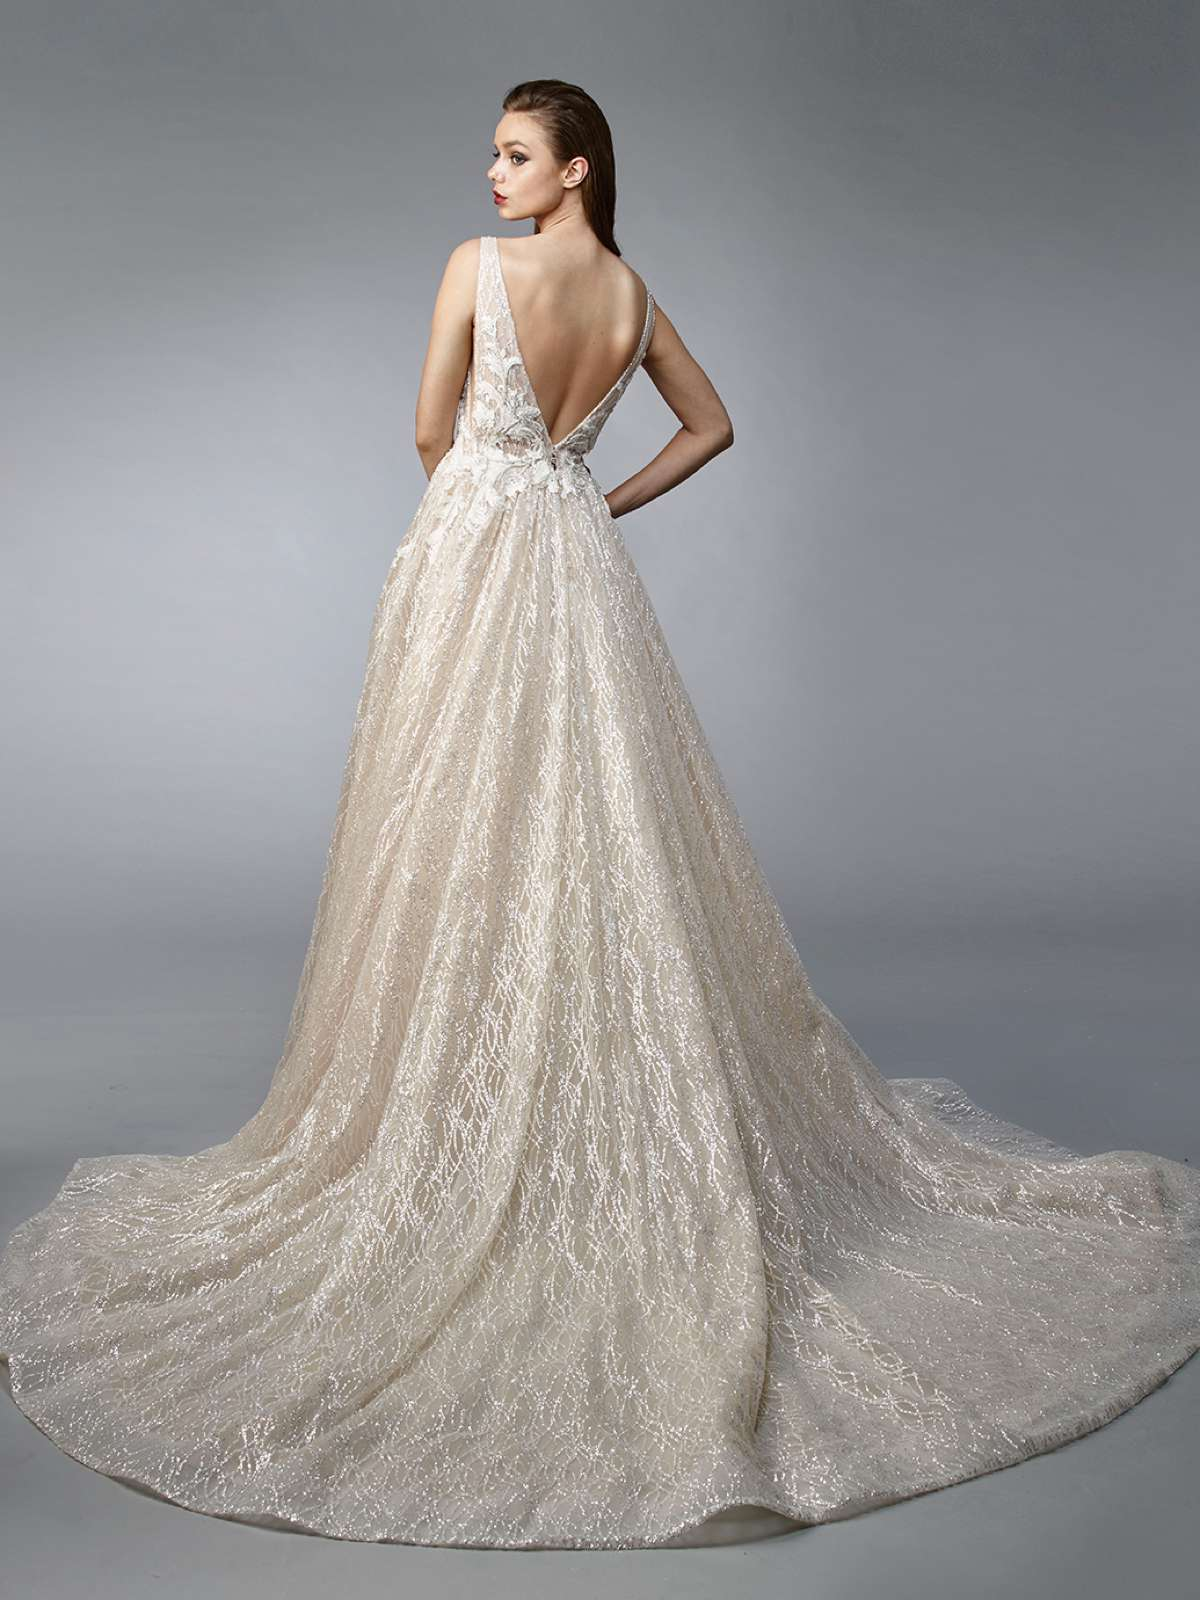 794074c5d068b Nellie by Enzoani - Find Your Dream Dress